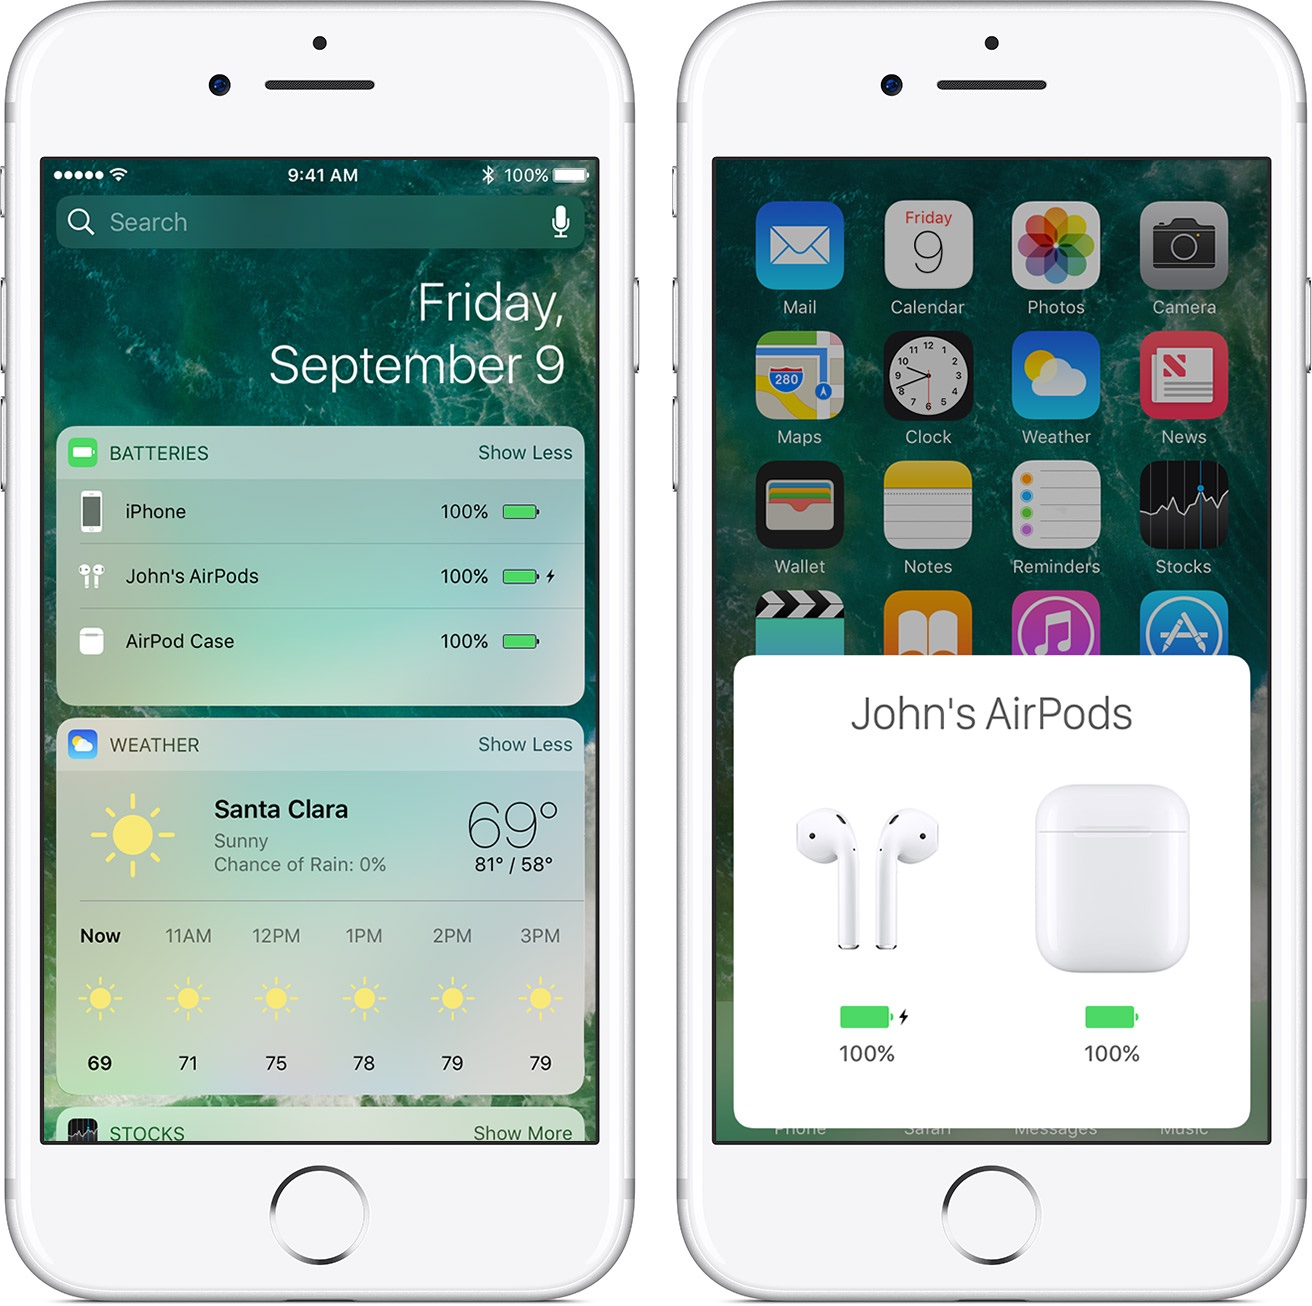 ios10-iphone7-airpods-case-widget-battery-charge onscreen iPhone screenshot 001